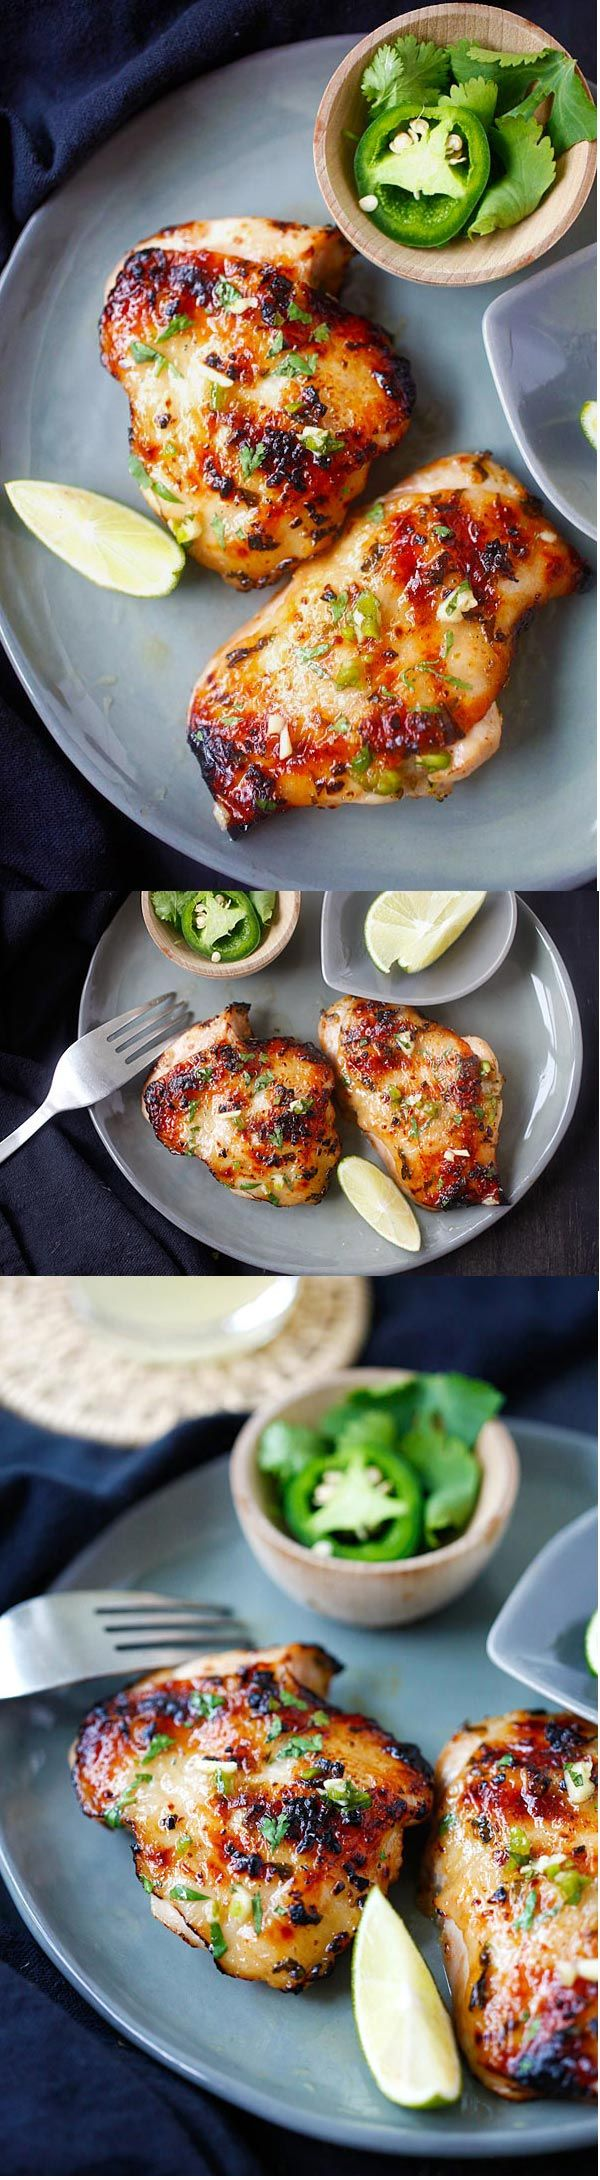 Chipotle Lime Chicken – ridiculously delicious and juicy grilled chicken recipe with chipotle chili, lime juice, garlic and cilantro!   rasamalaysia.com